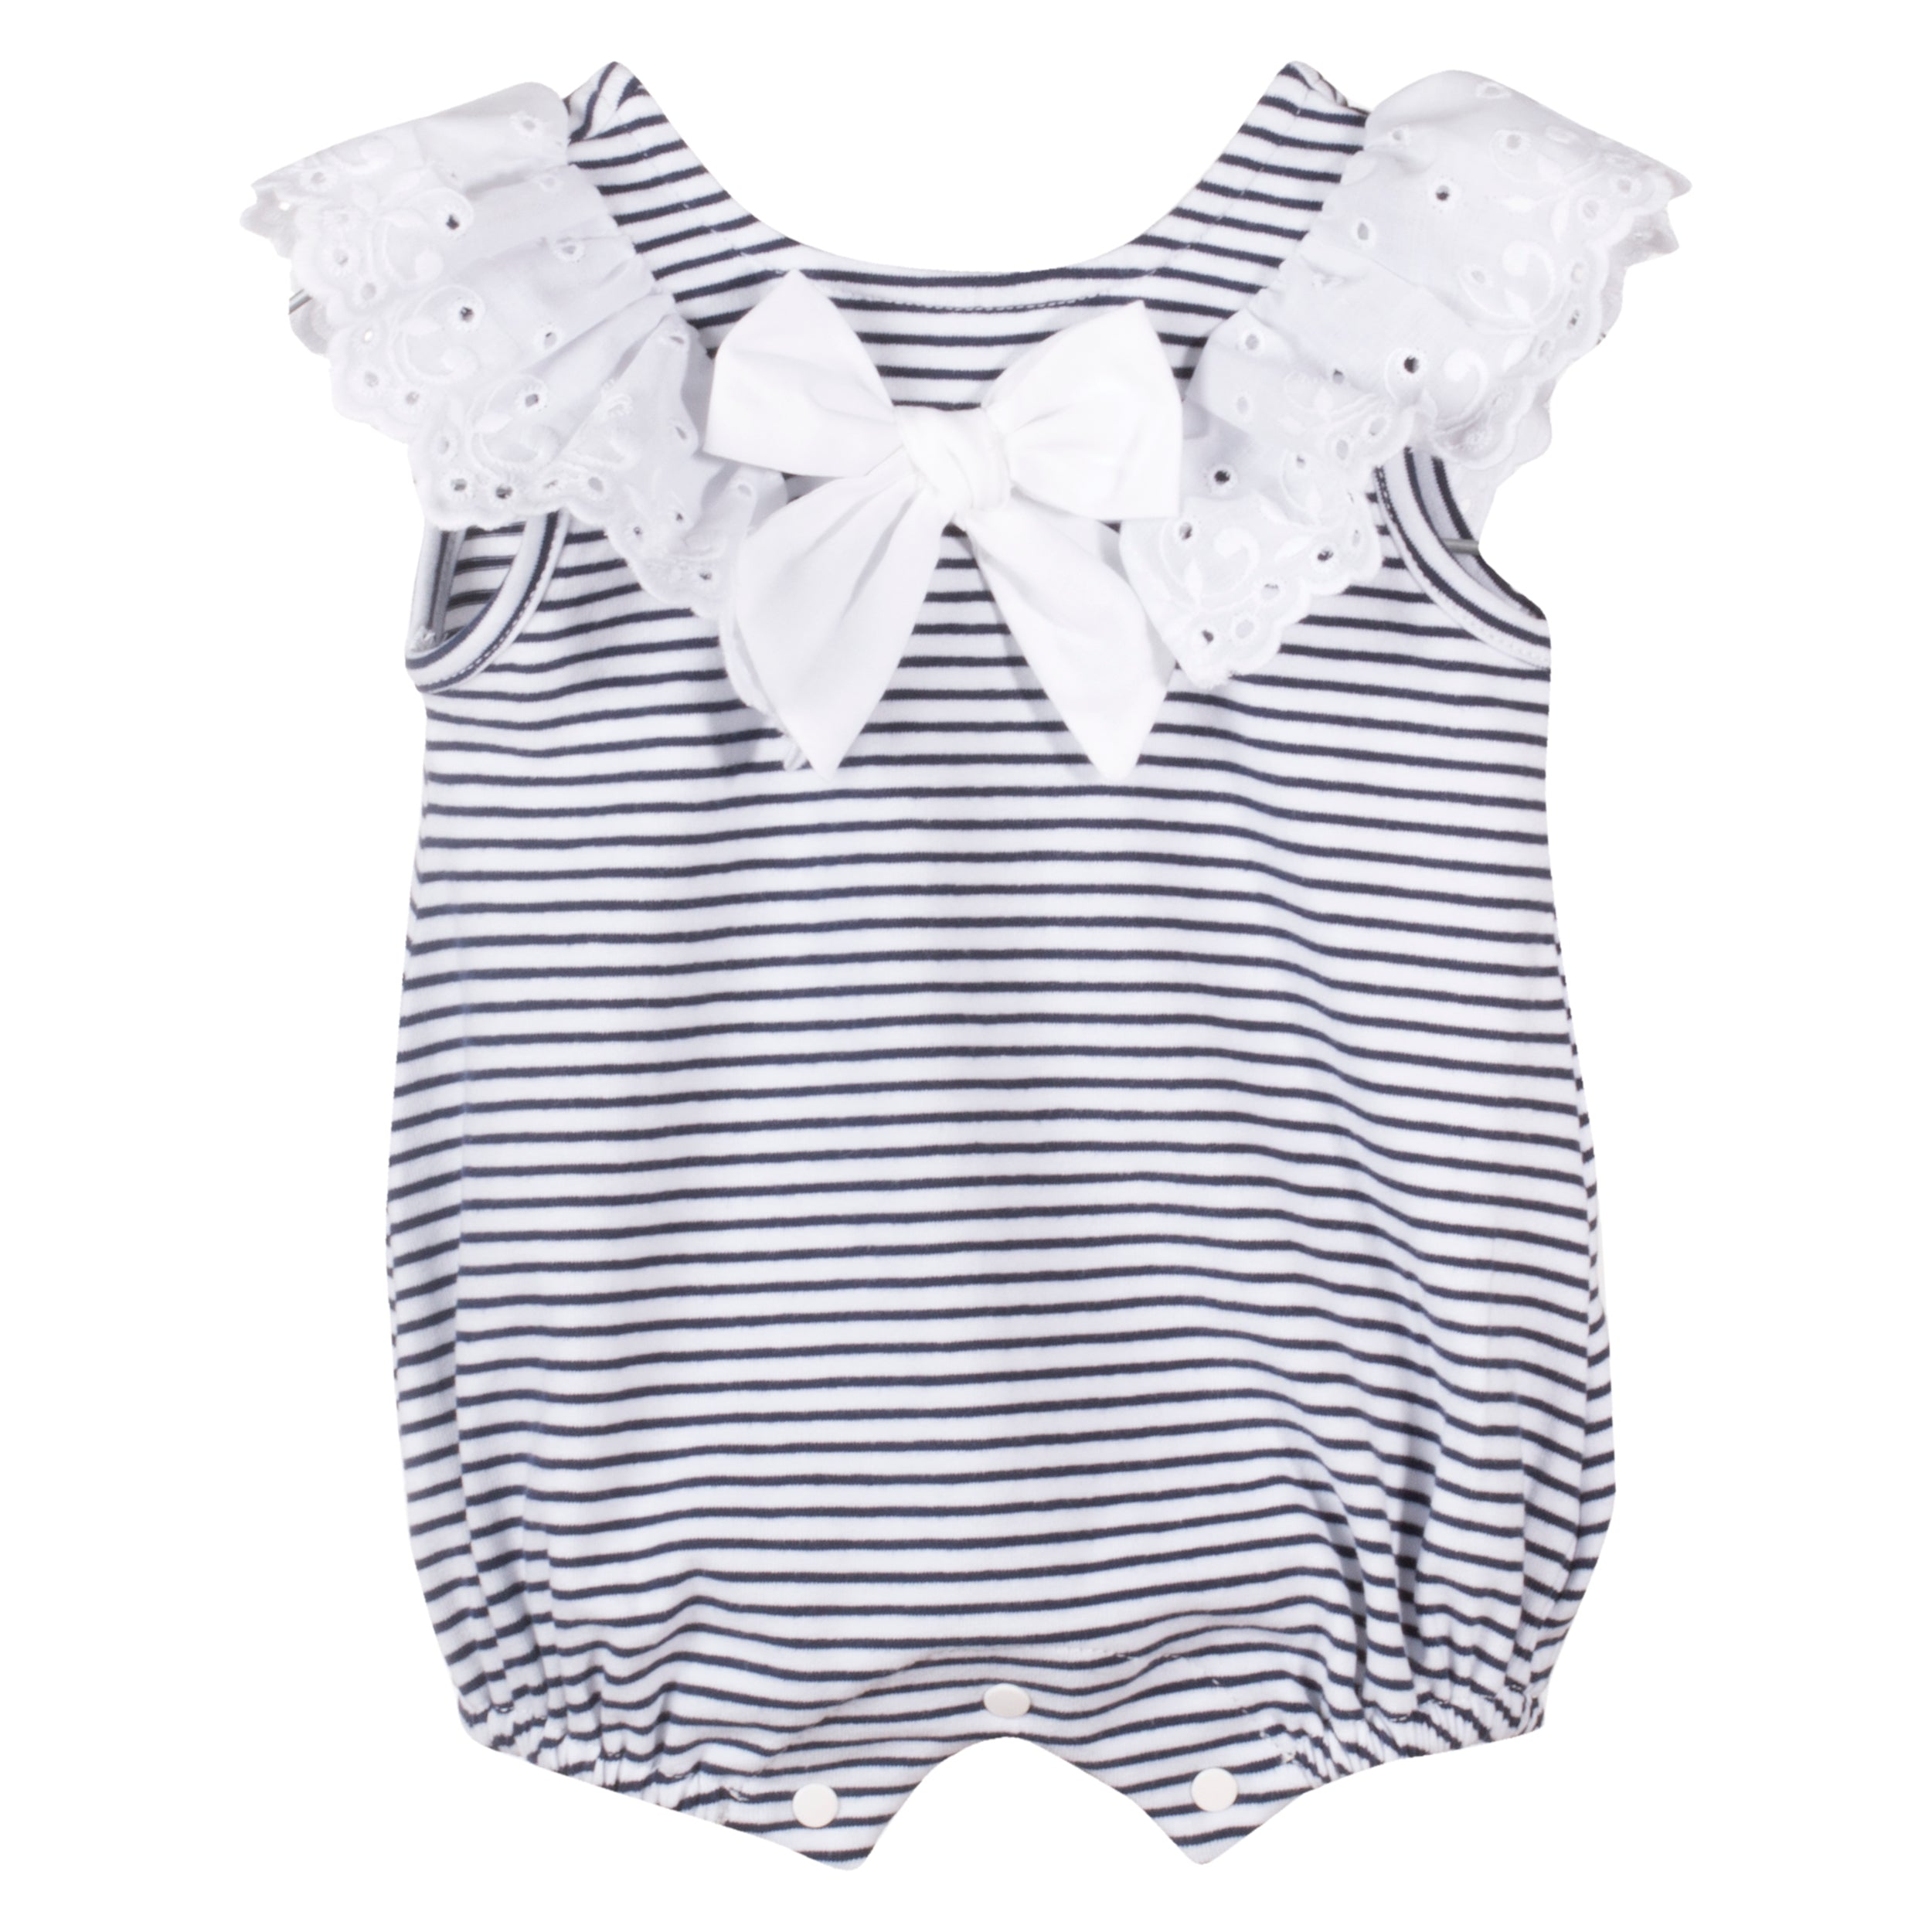 df1324ee5a SS19 Patachou Baby Girls Navy Blue & White Stripe Frill Romper – Liquorice  Kids